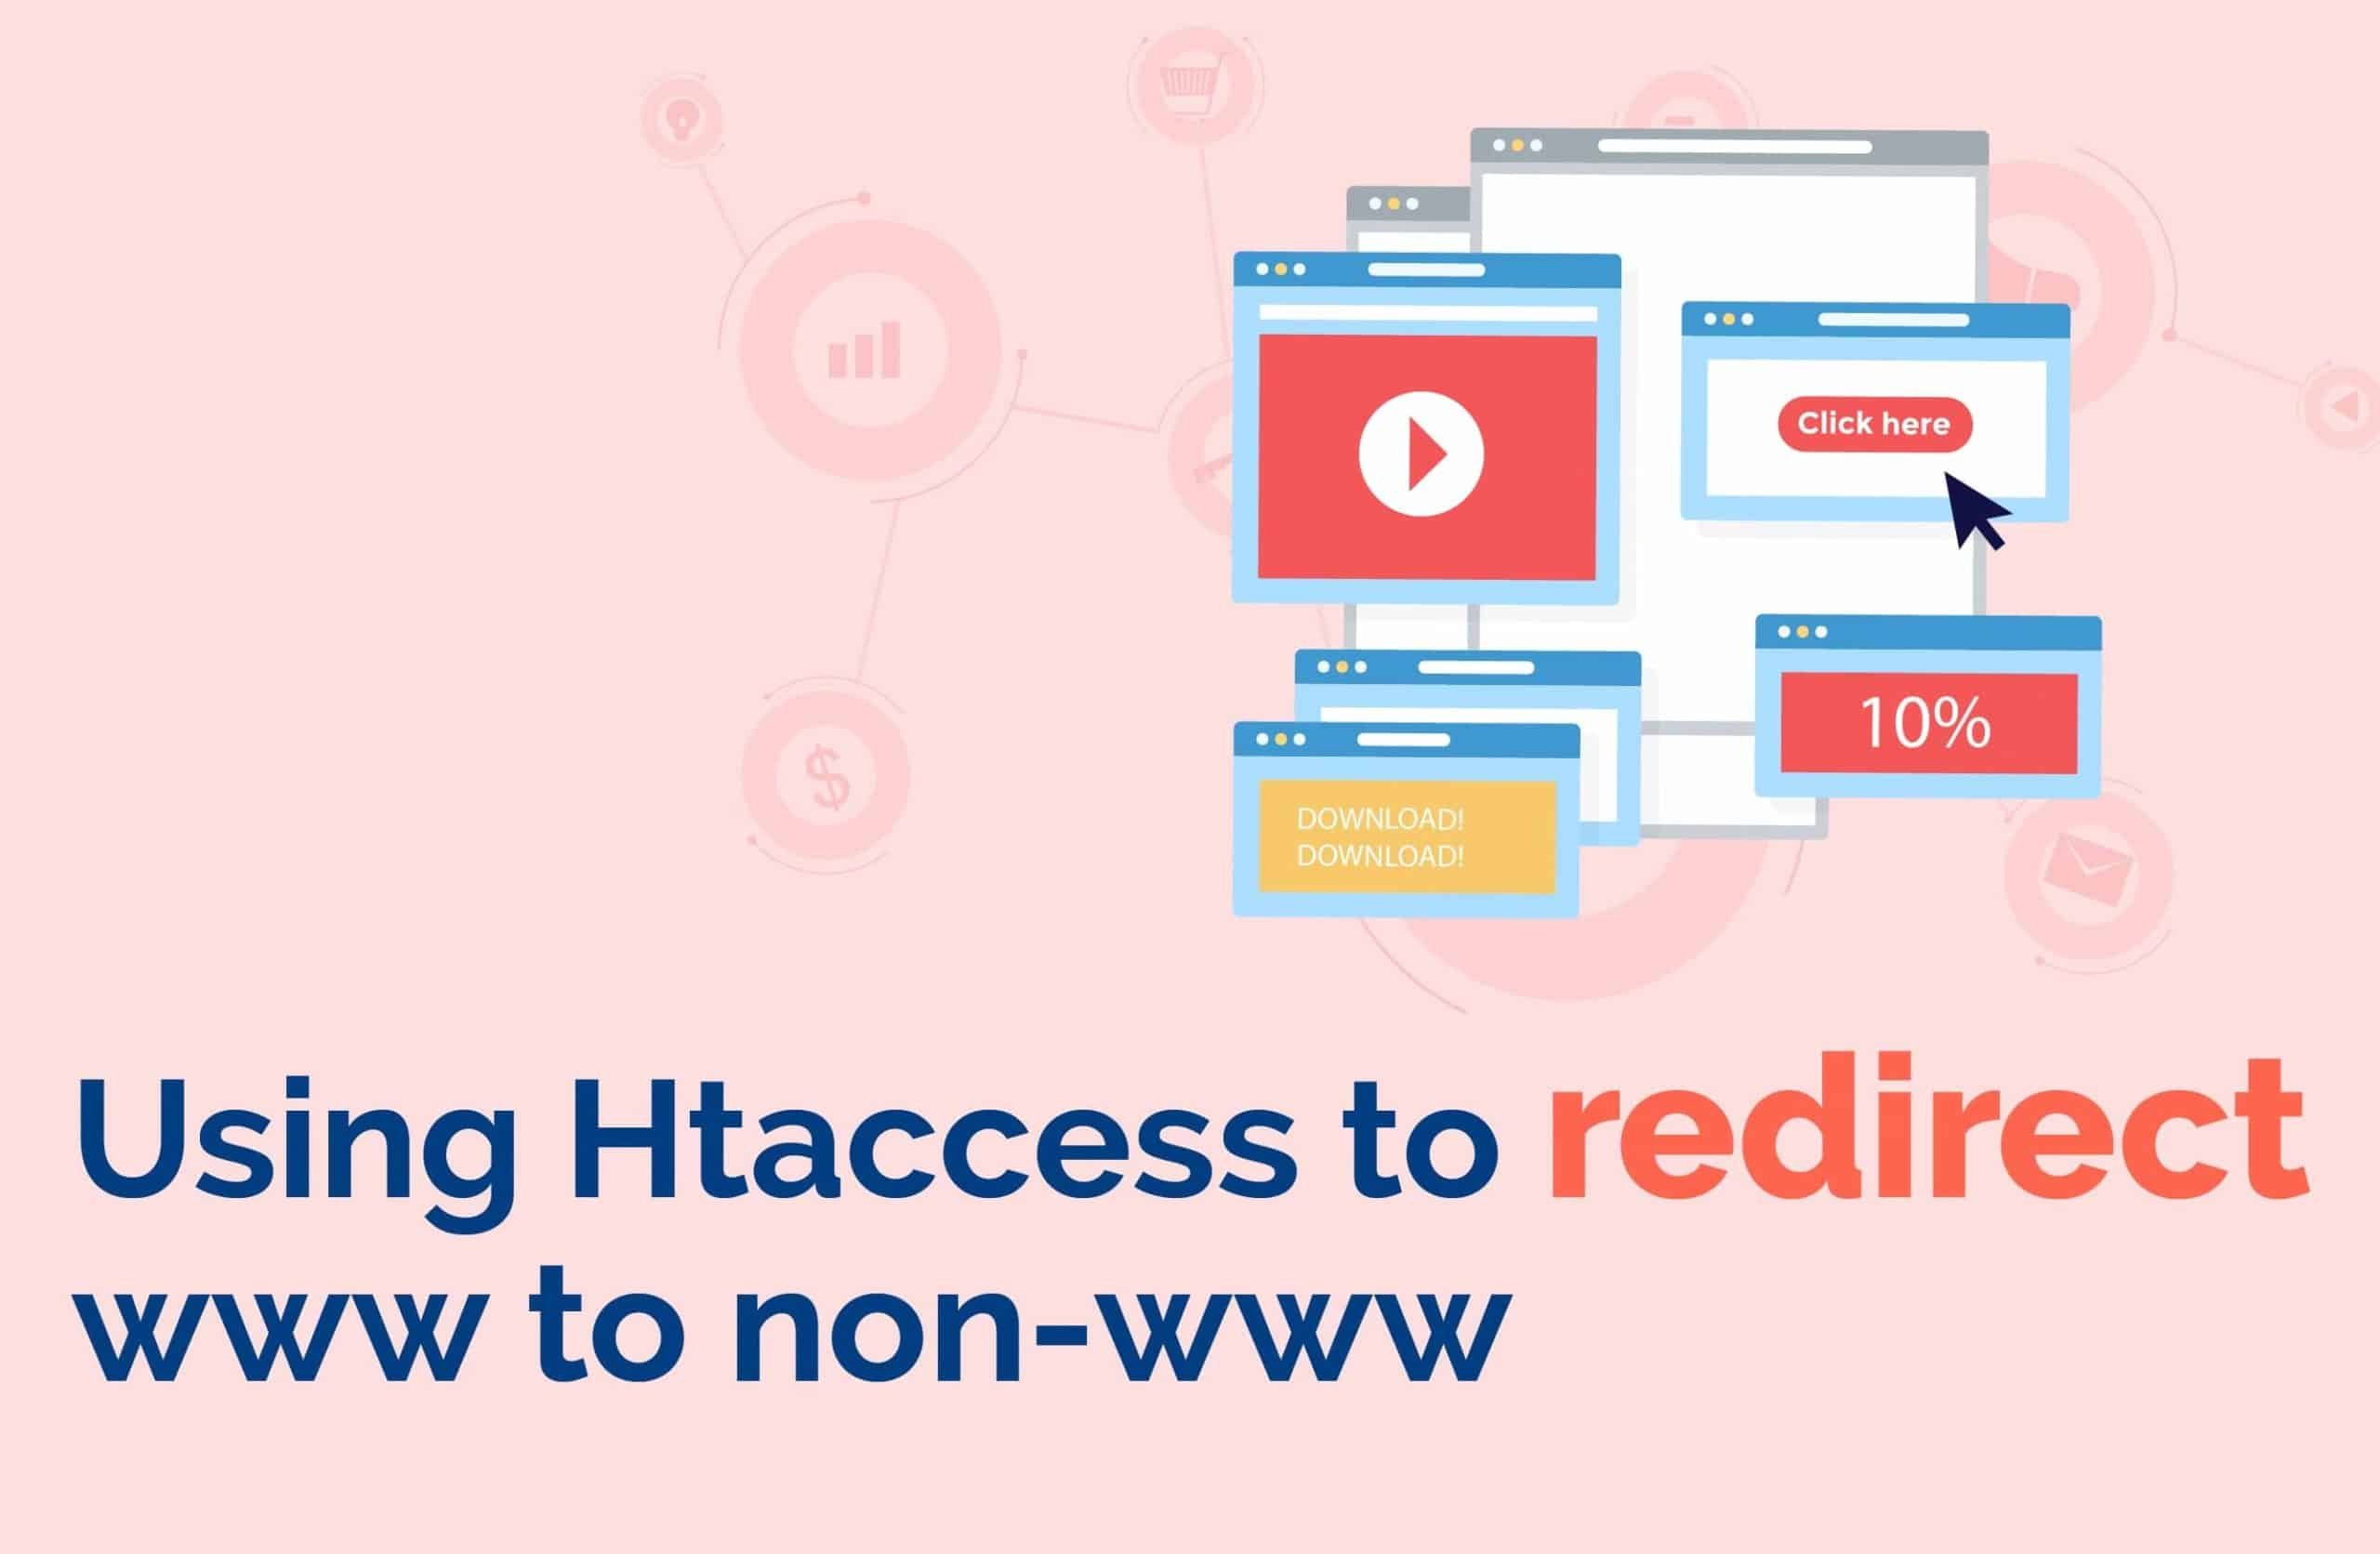 Using Htaccess to redirect www to non-www